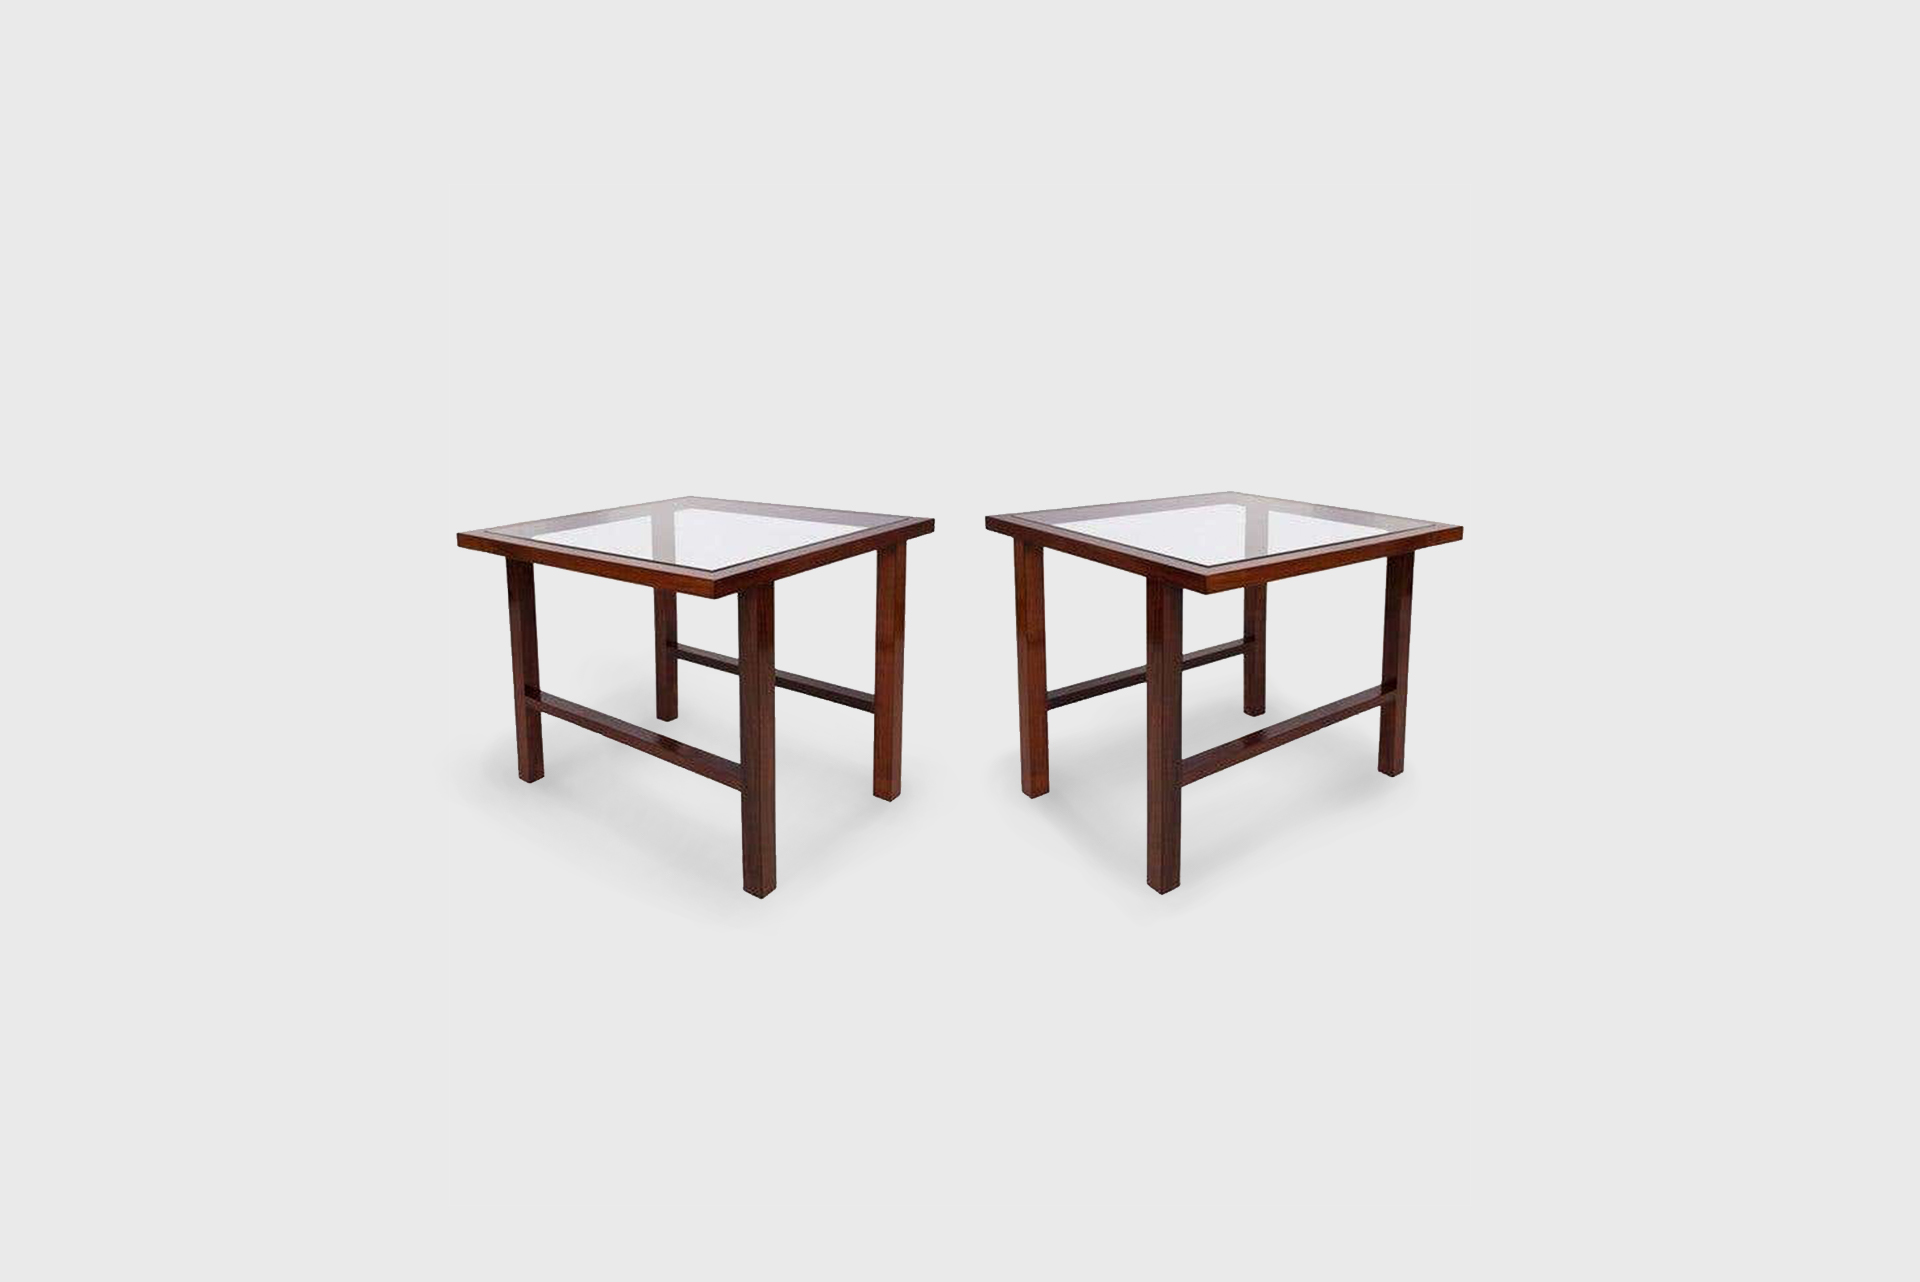 Pair of glass top side tables. Manufactured by Branco & Preto. Brazil, 1950s. Glass, caviuna wood